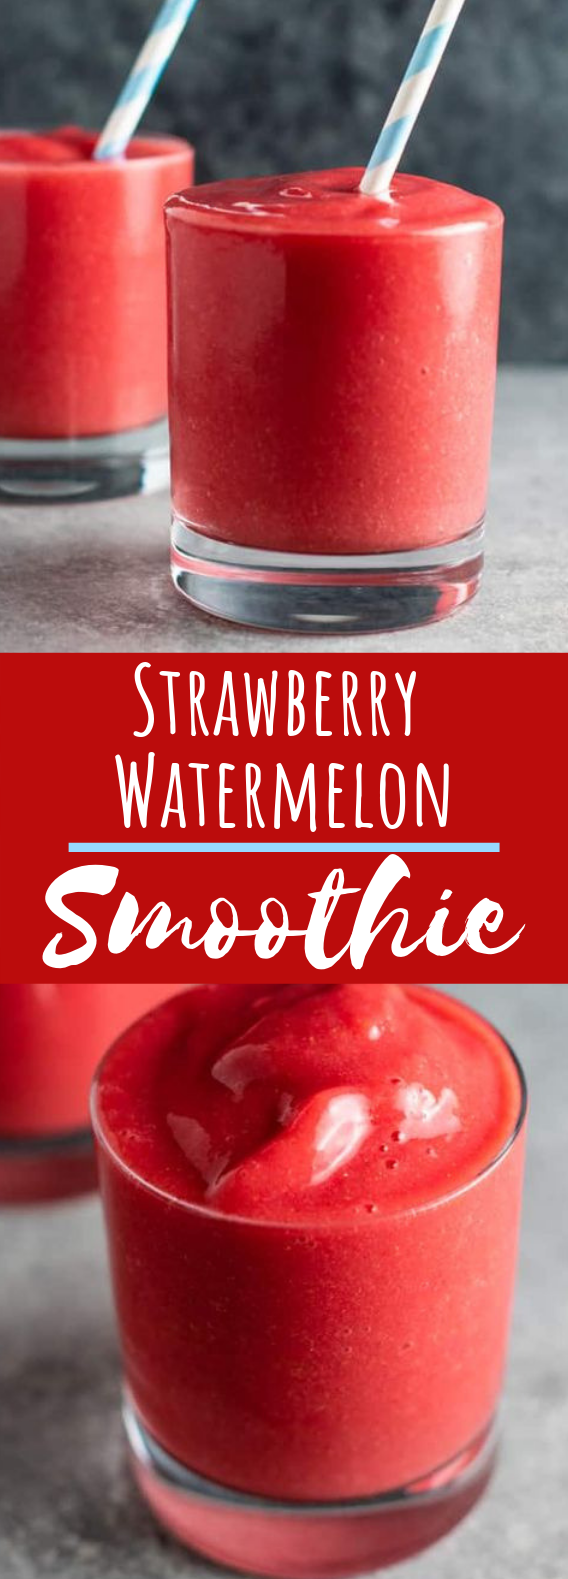 STRAWBERRY WATERMELON SMOOTHIE #drinks #healthy